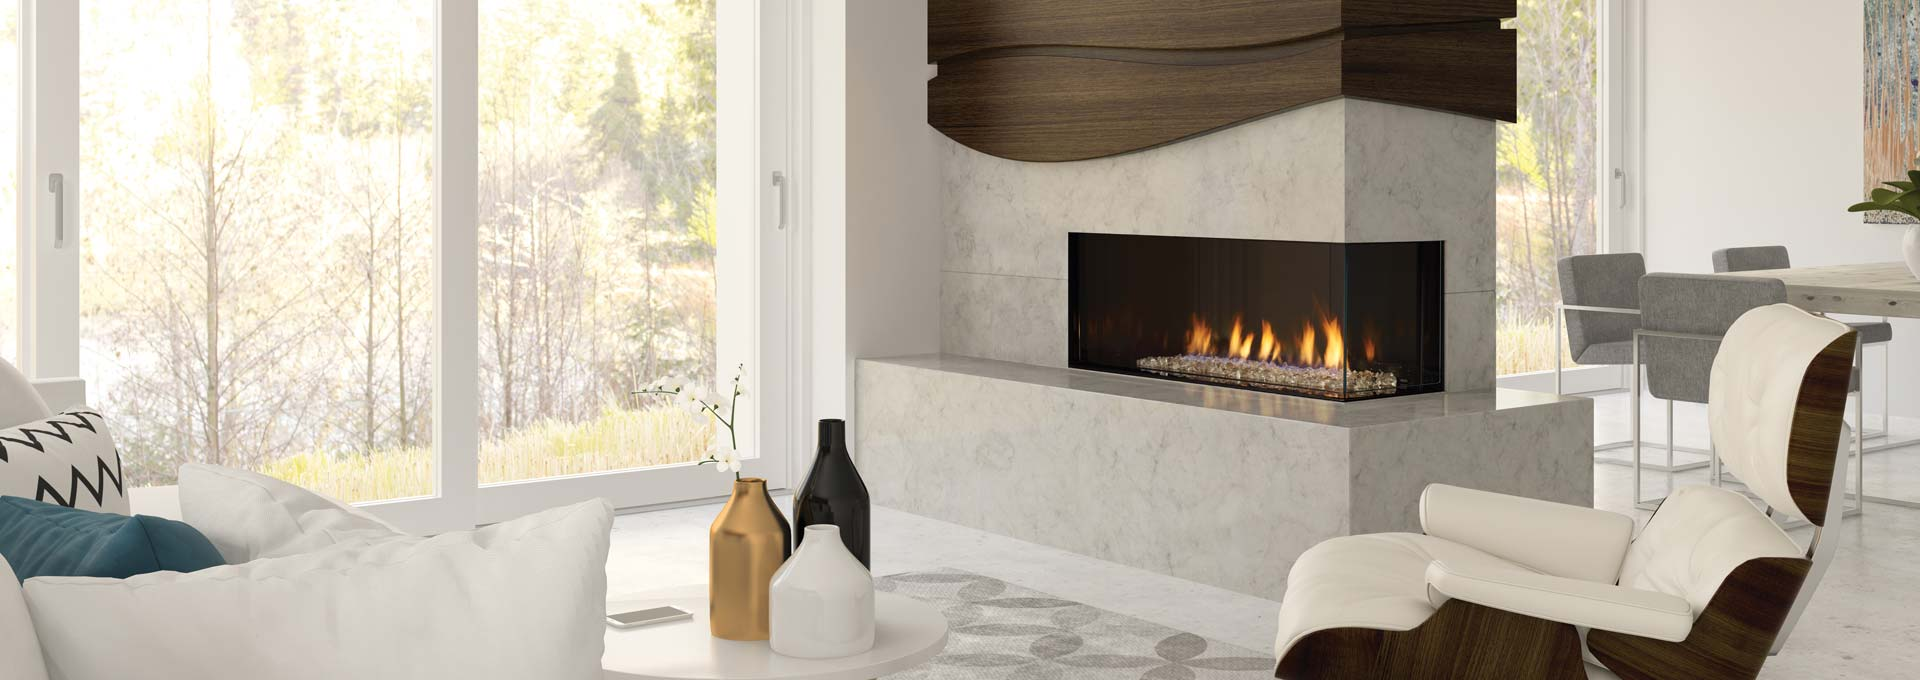 Fireplace Renovation Guide: What to Expect